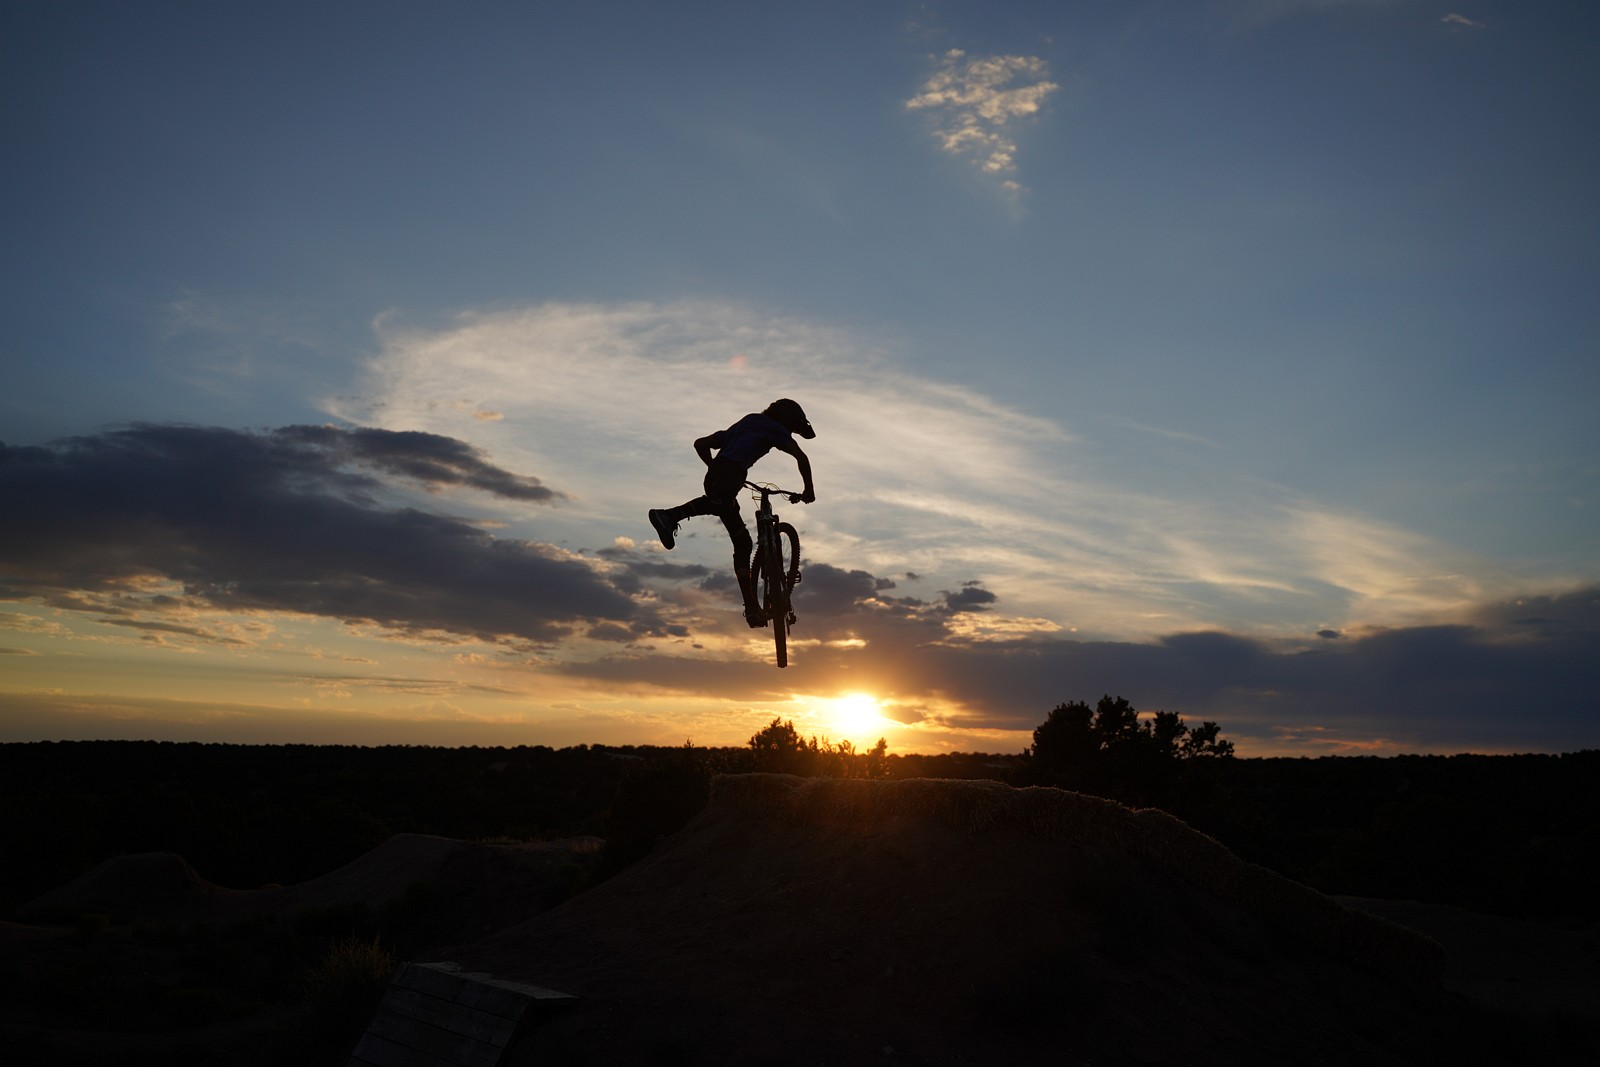 Henry One-Foot Whip - legpwr - Mountain Biking Pictures - Vital MTB